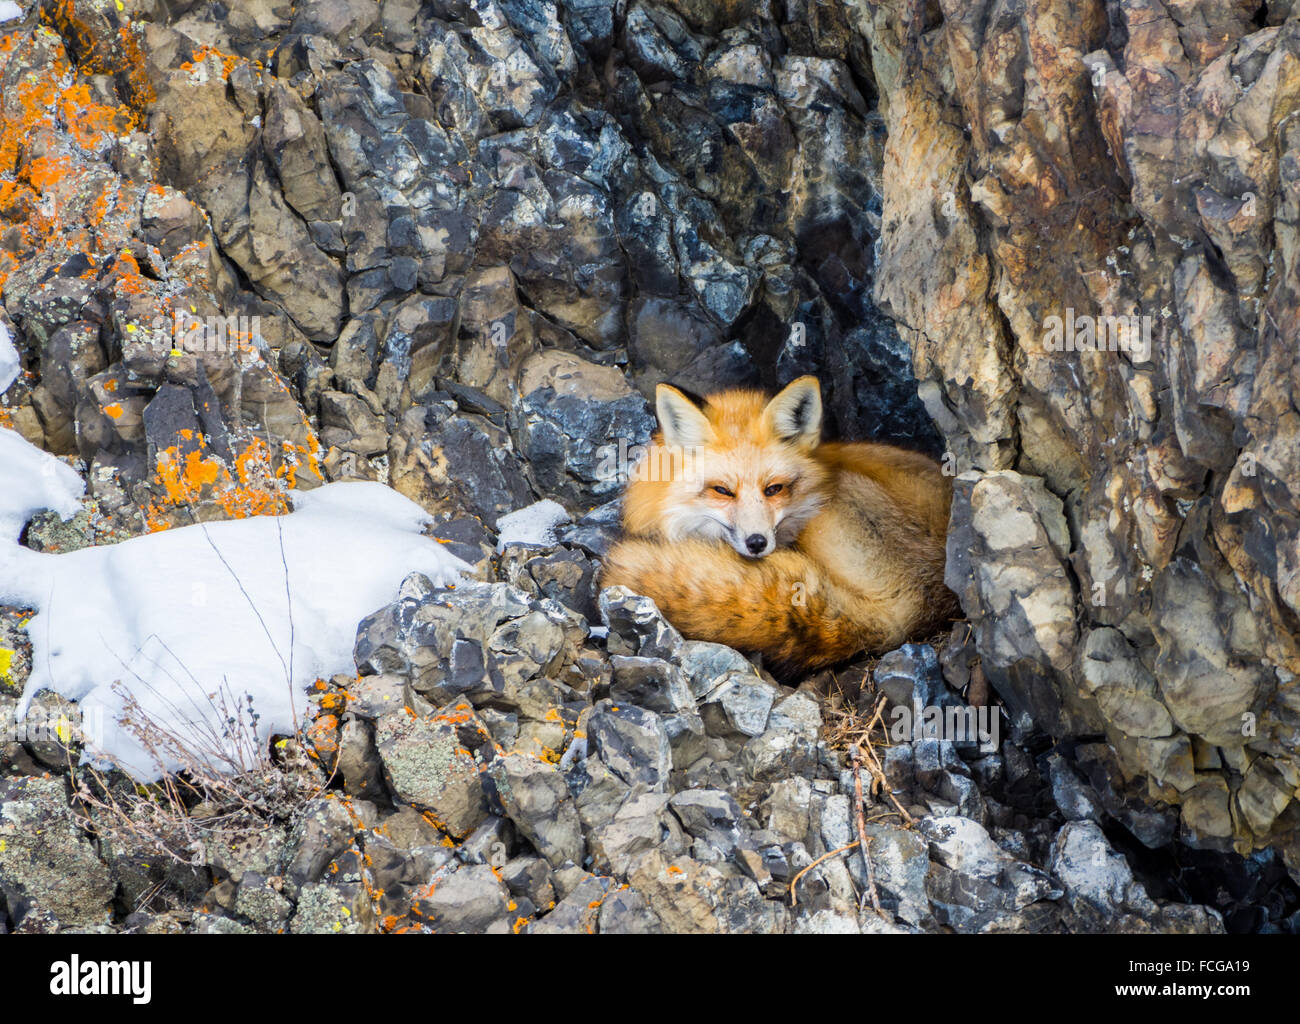 A red fox (Vulpes vulpes) is ready to take a nap in his den between rocks. Yellowstone National Park, Wyoming, USA. - Stock Image